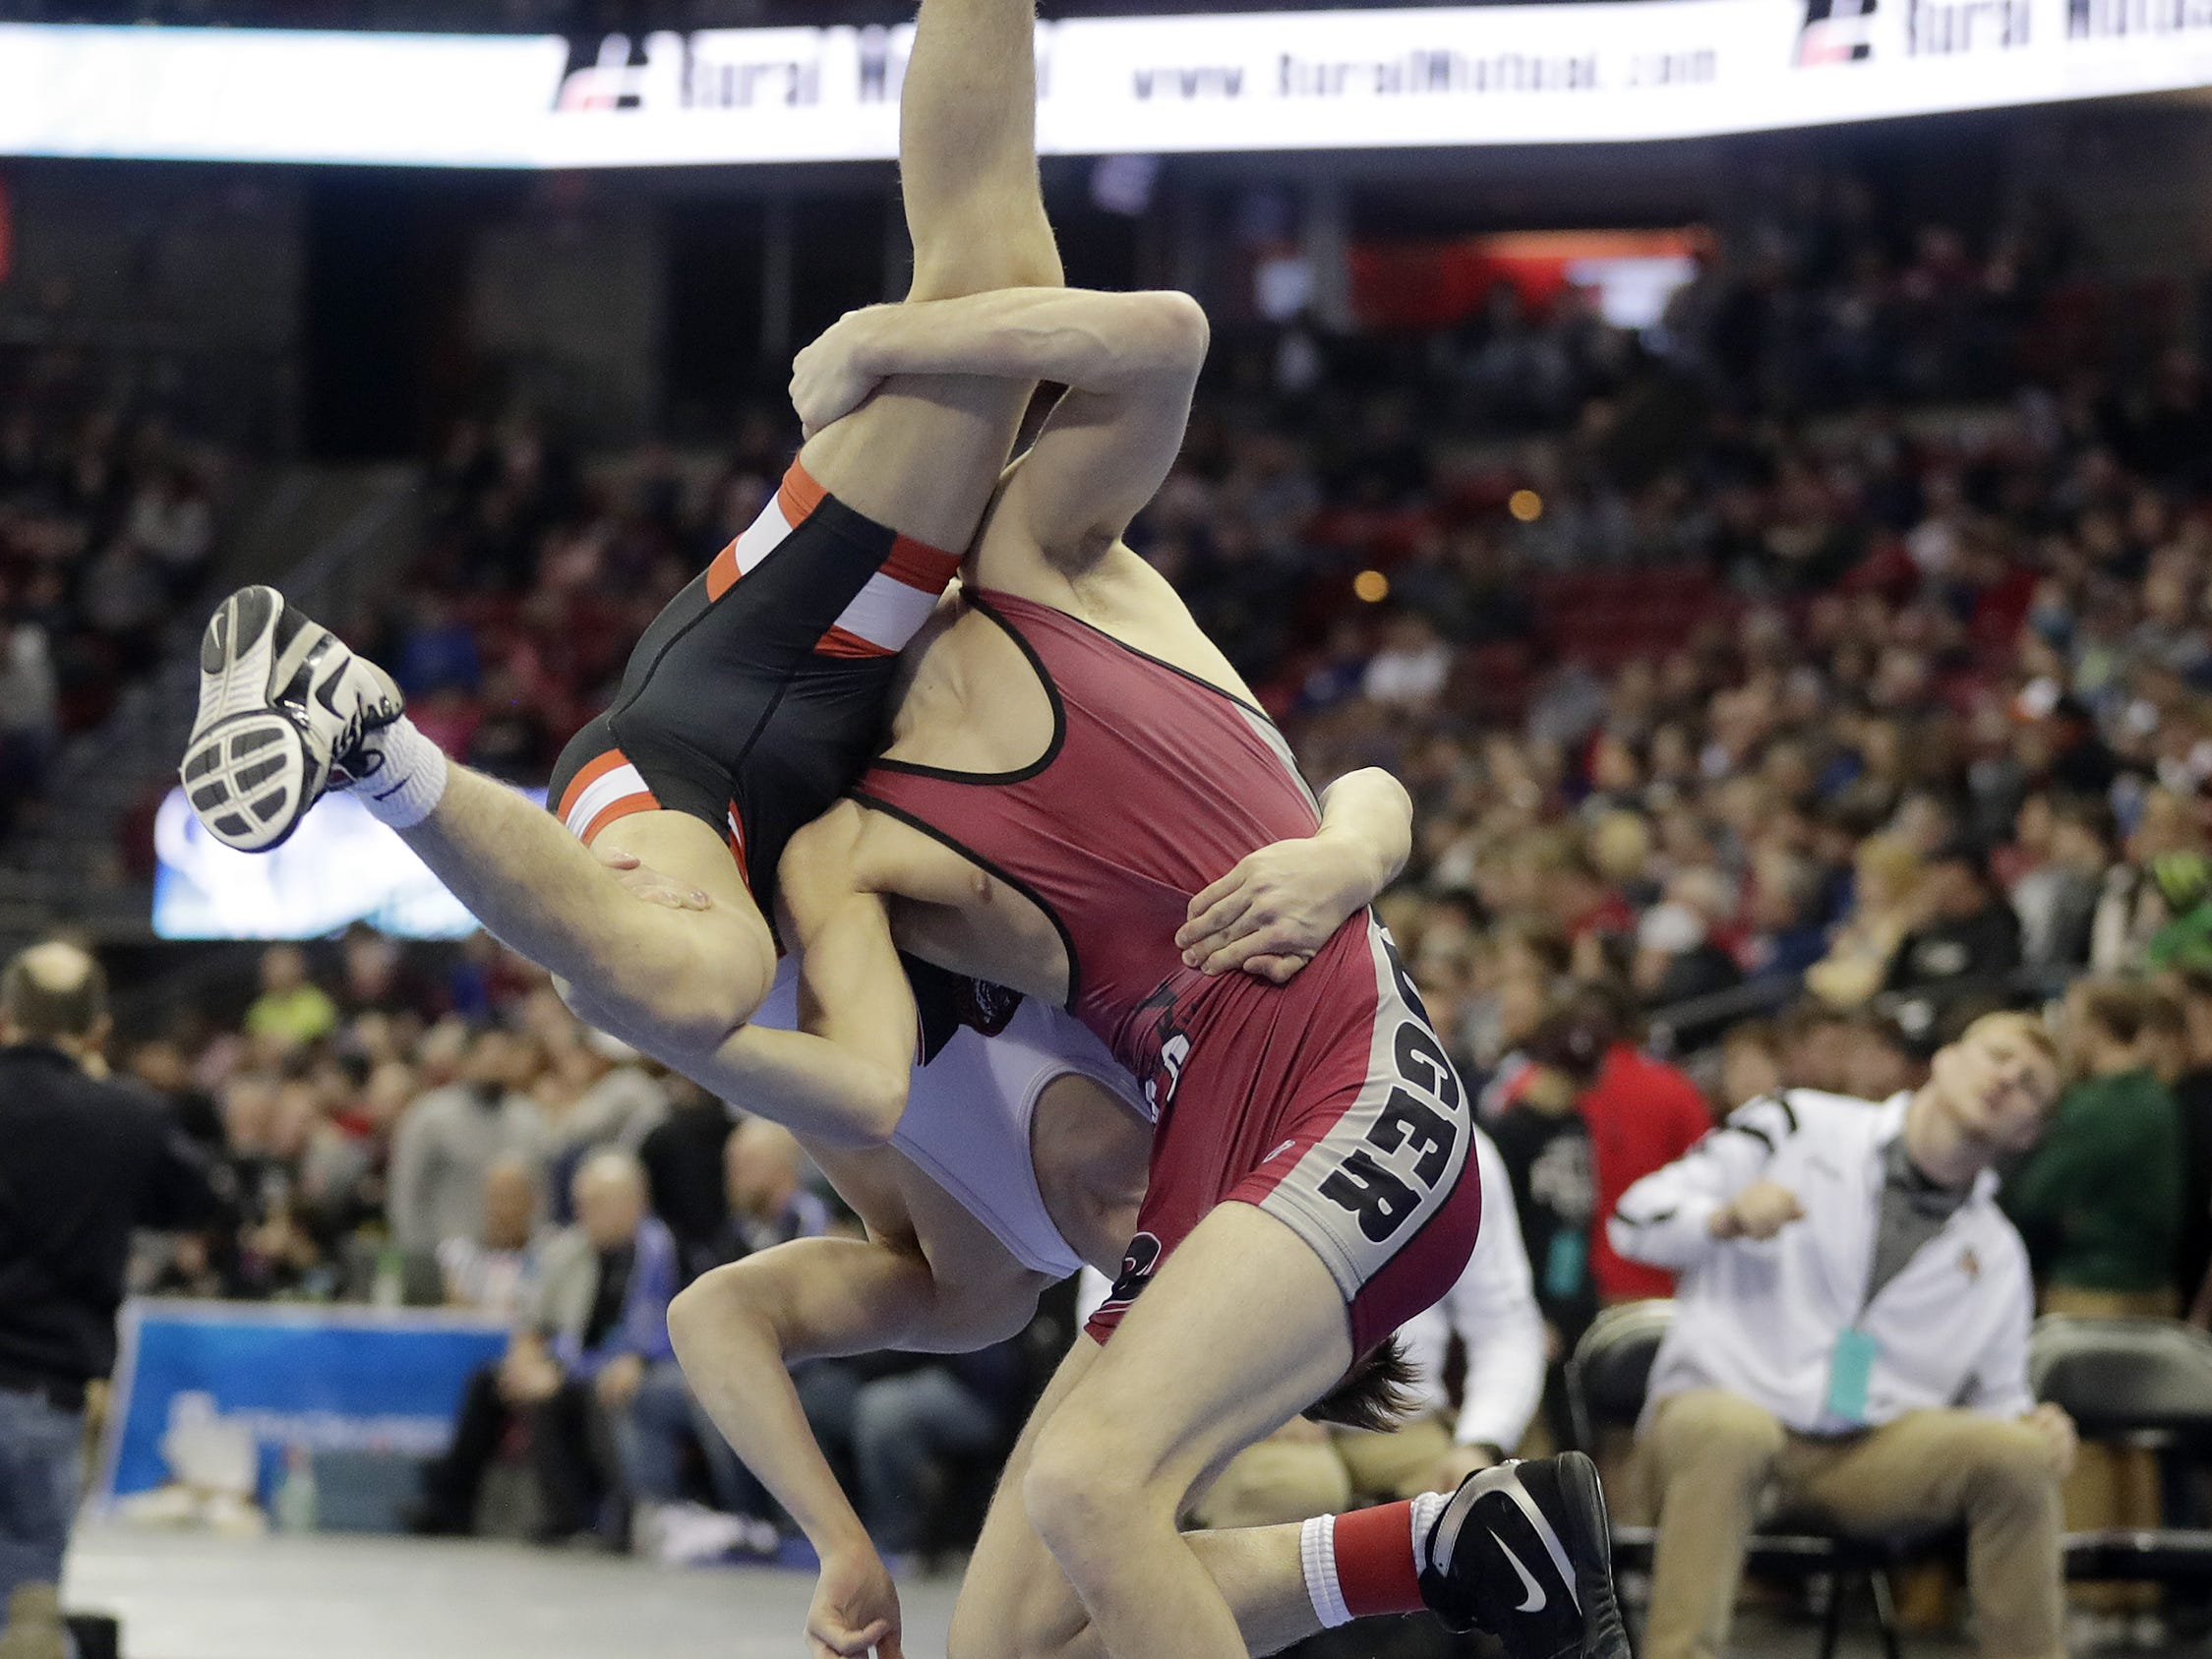 Marshfield's Shane Westerhausen wrestles Badger's Jake Striesky in a Division 1 120-pound preliminary match at the WIAA state individual wrestling tournament at the Kohl Center on Thursday, February 21, 2019 in Madison, Wis. Adam Wesley/USA TODAY NETWORK-Wisconsin